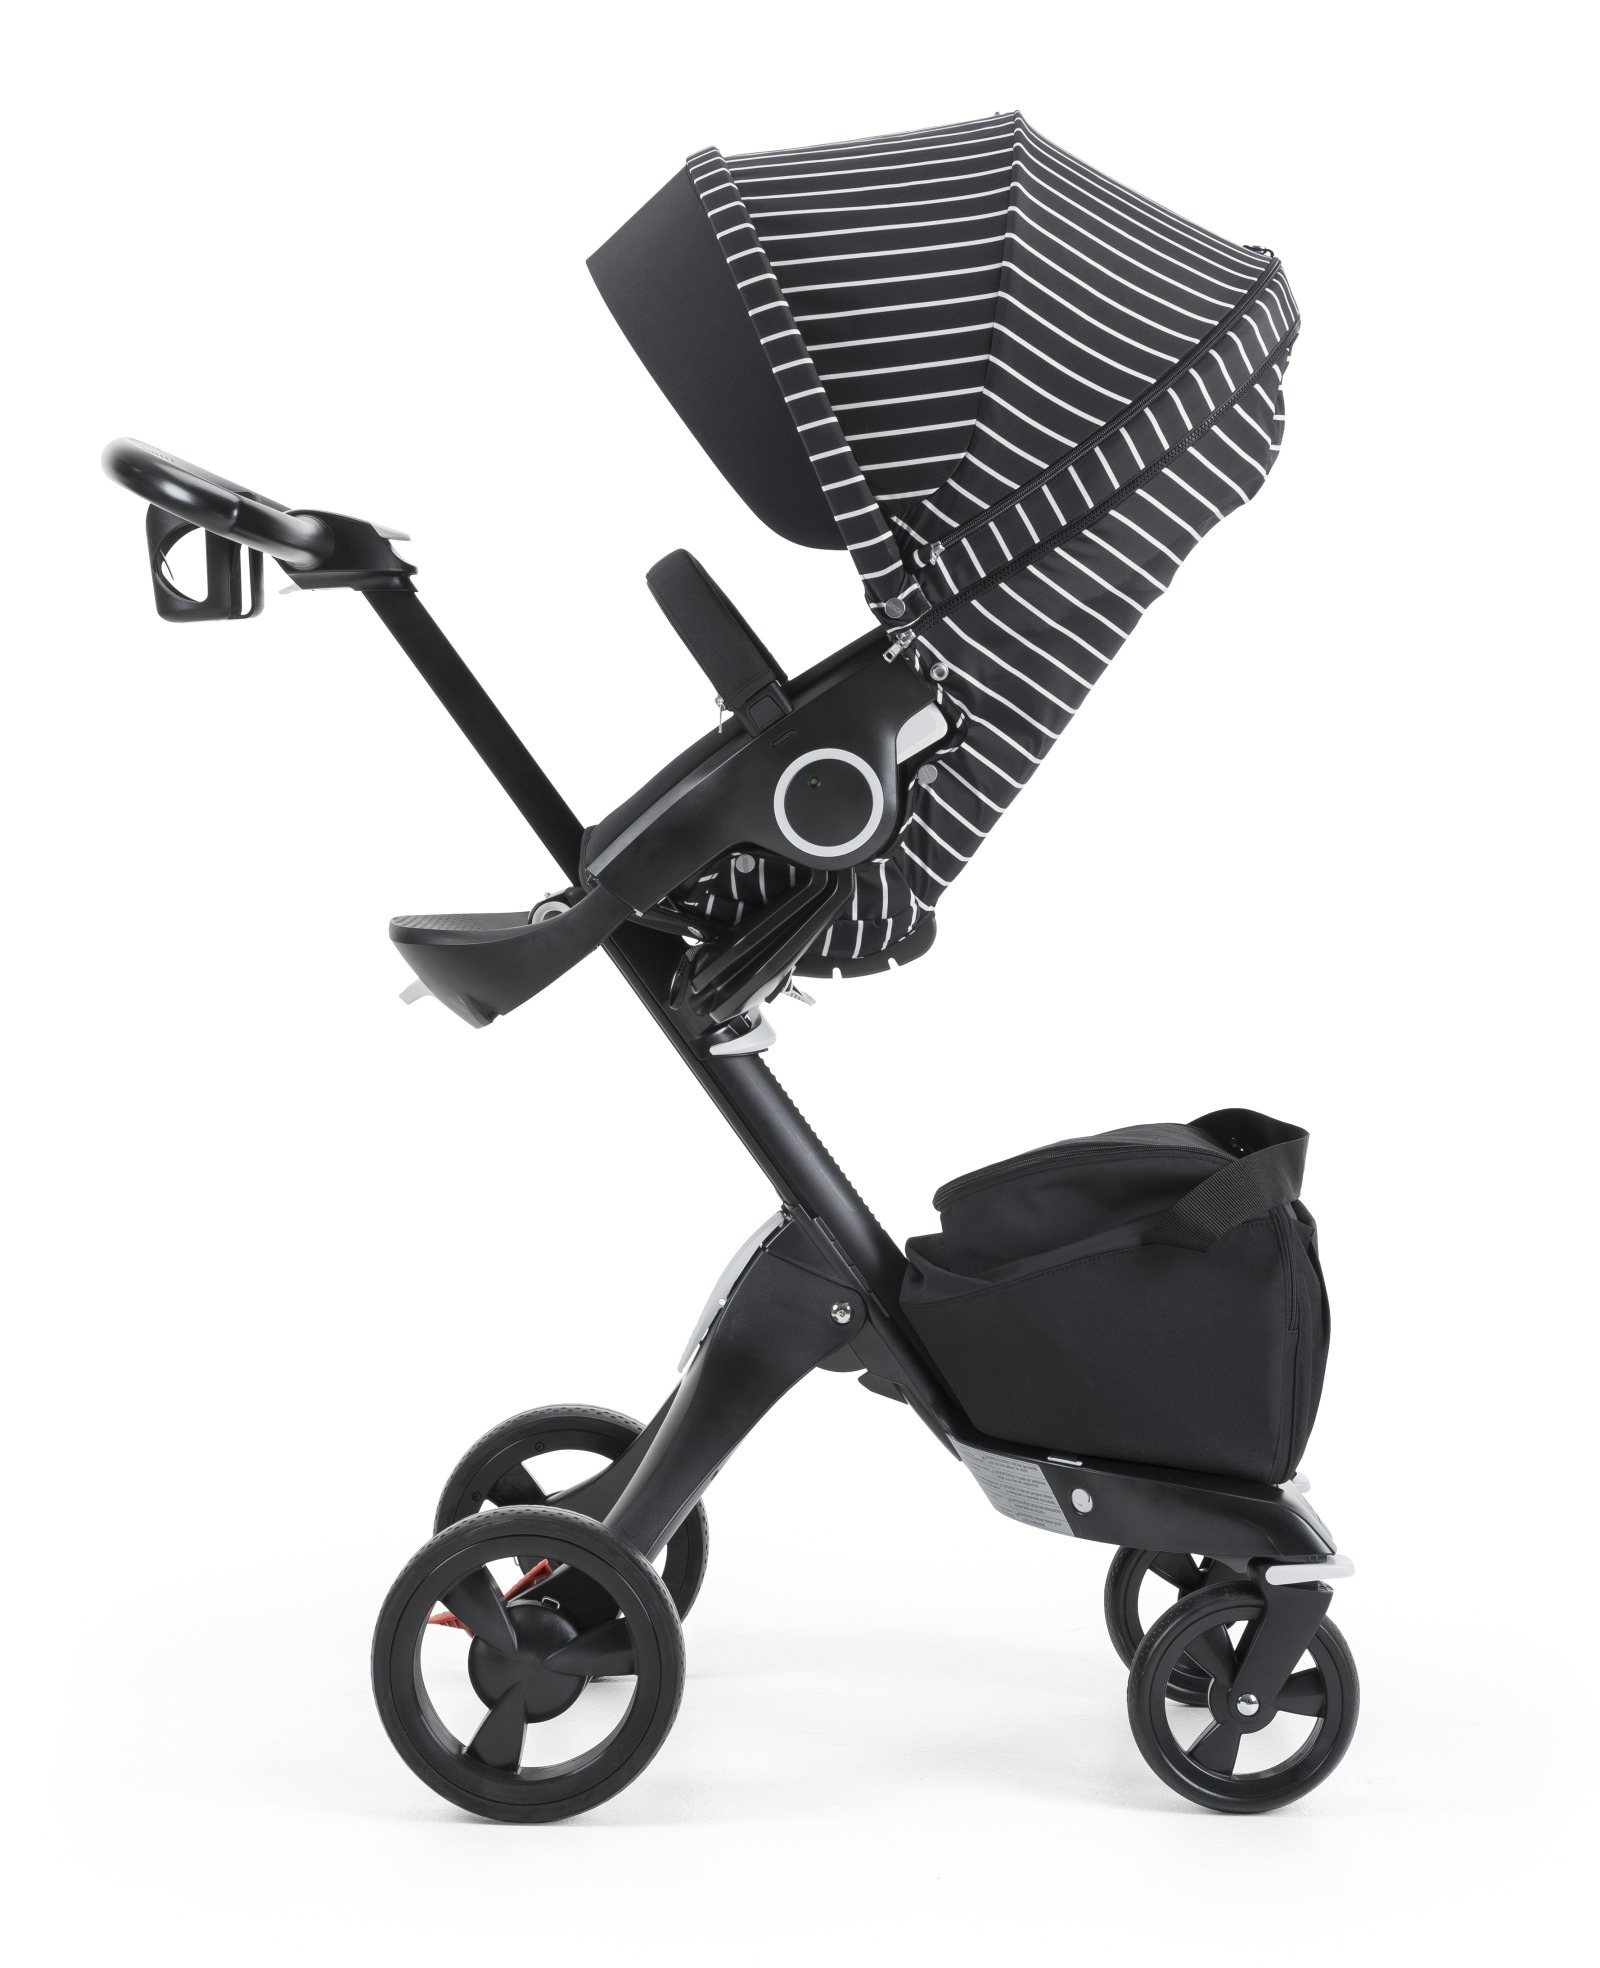 Stokke® Xplory® with Stokke® Stroller Seat and White Stripe Style Kit.